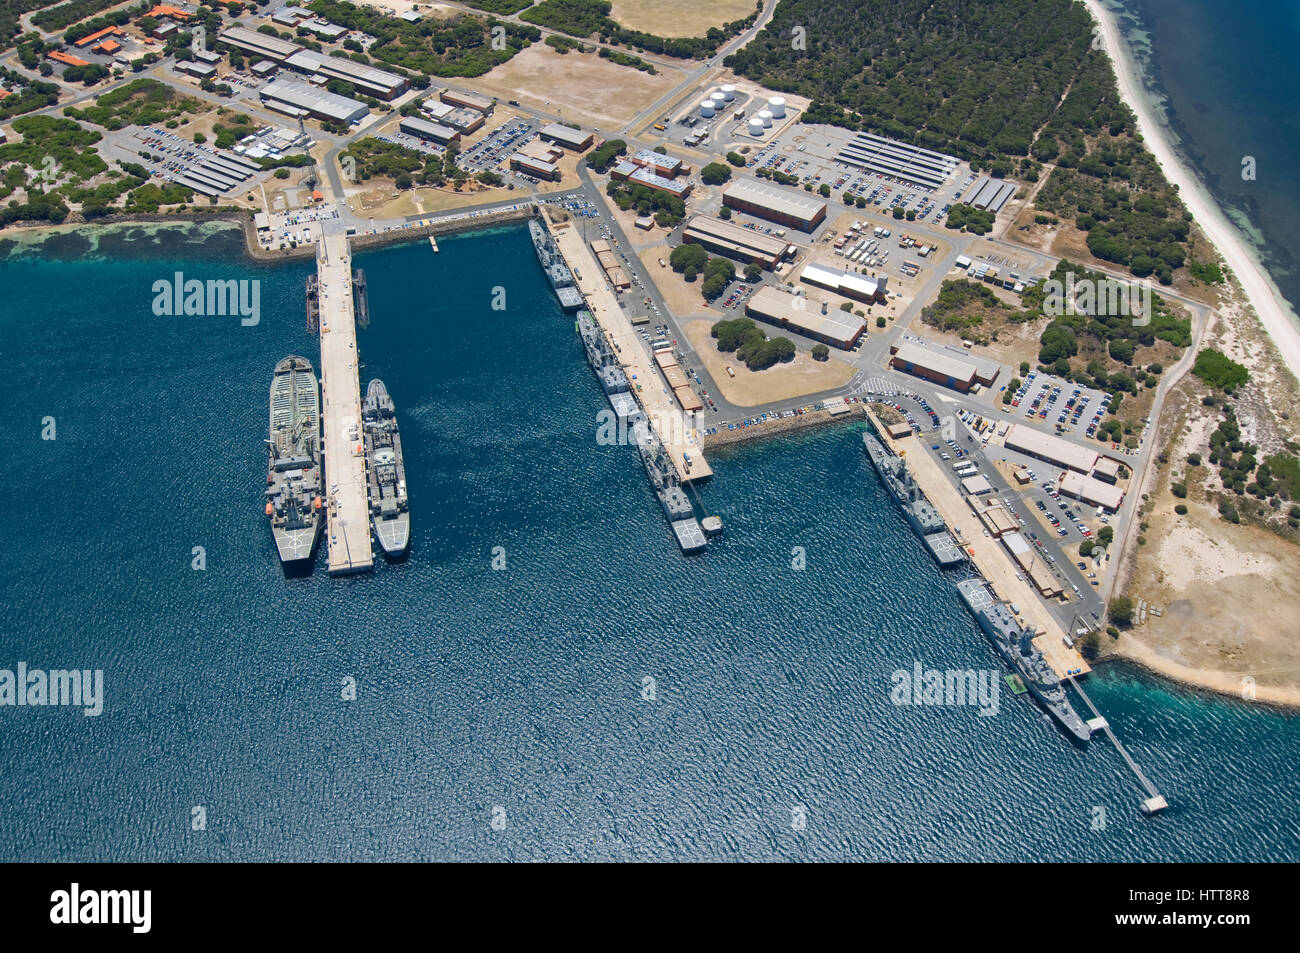 Aerial View Of The Naval Base Of Hmas Stirling On Garden Island In